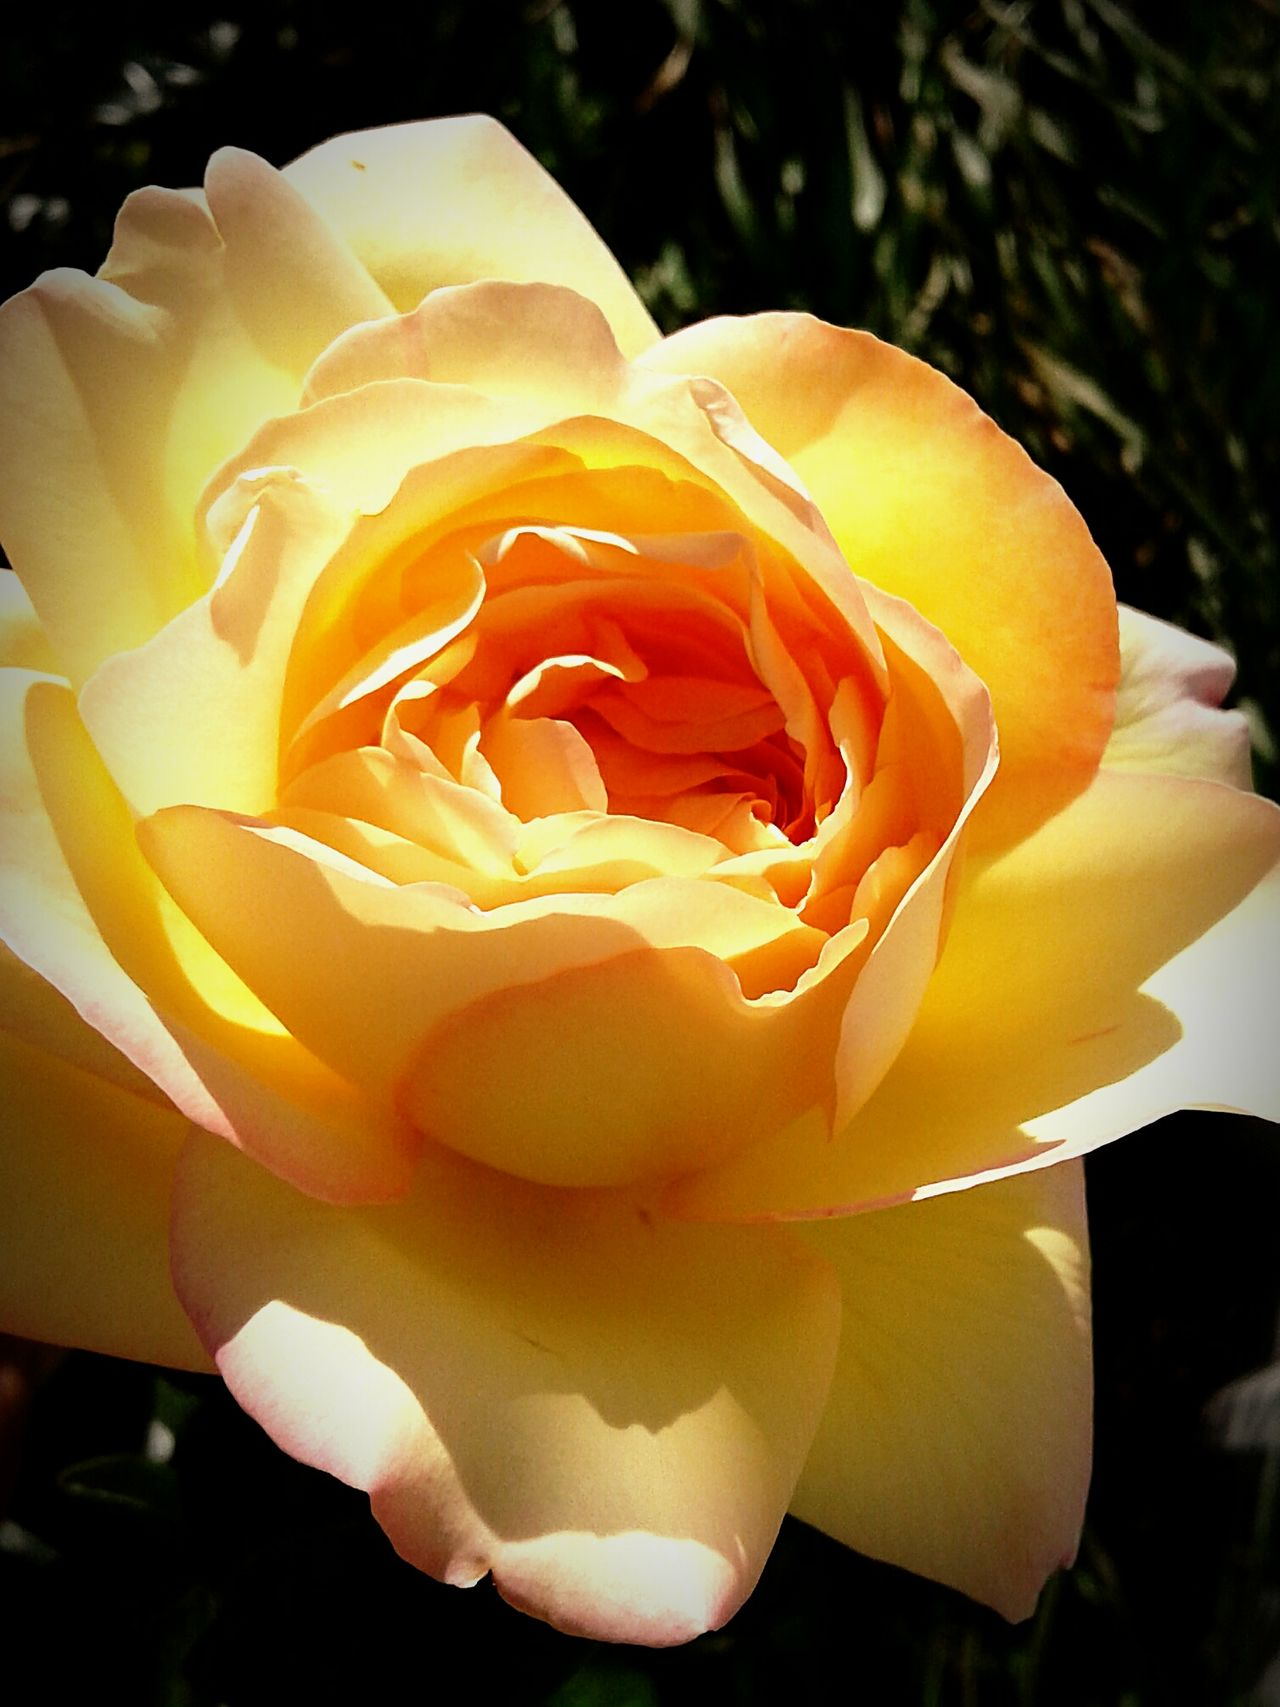 Flower Rose - Flower Petal Nature Flower Head Plant Beauty In Nature Outdoors Close-up Freshness Fragility No People Day EyeEmNewHere Rose Garden Rose Petals Blooming Flower Flowers,Plants & Garden Flowers, Nature And Beauty Rose♥ Nature Yellow Rose